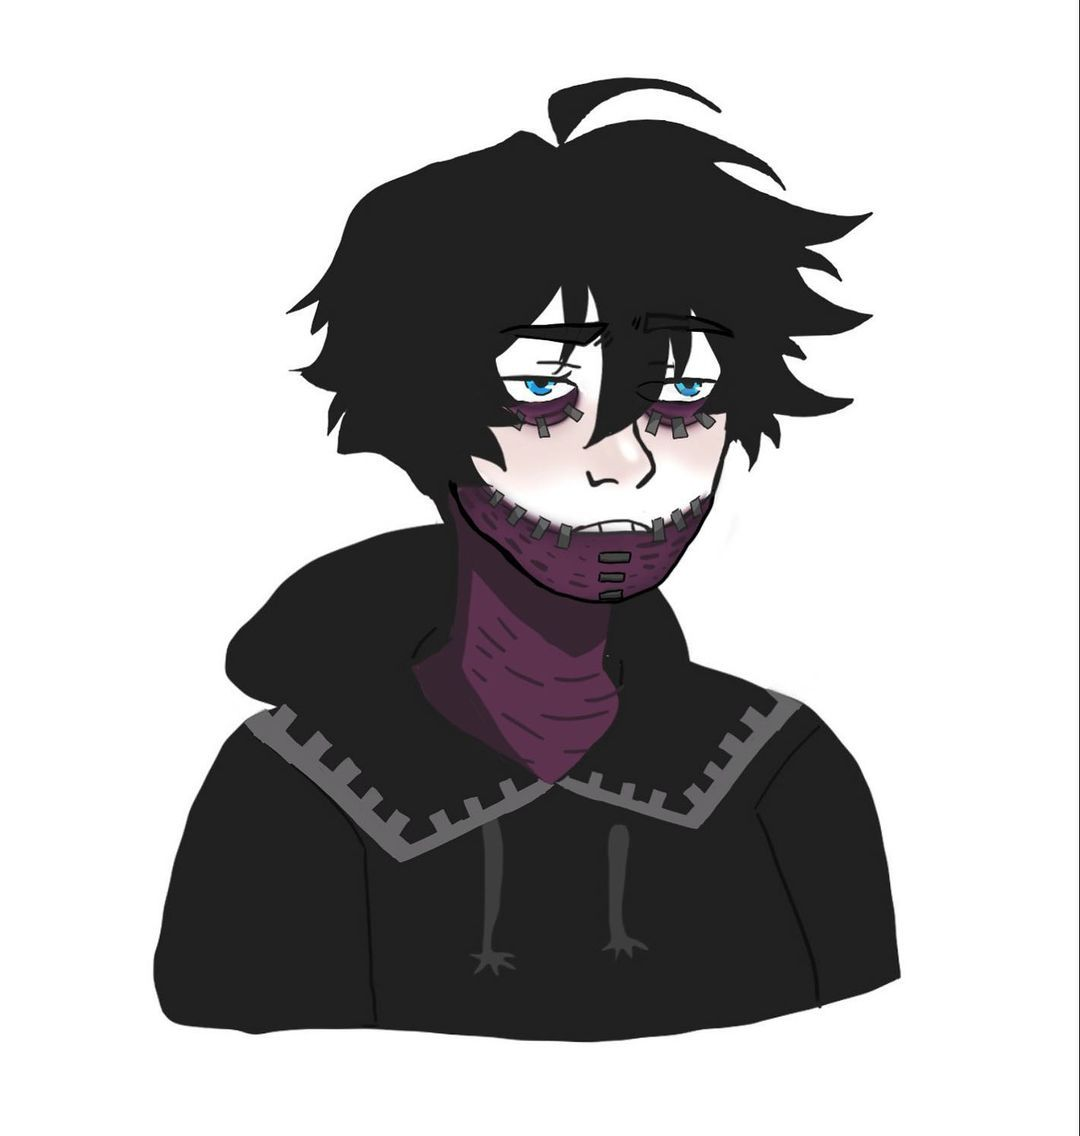 "Photo of Milkikaty on Instagram: ""doomer boy but make it Dabi 💜🖤 . feel free to use it as a profile picture, in memes and share it around. don't forget to credit @milkikaty…"""